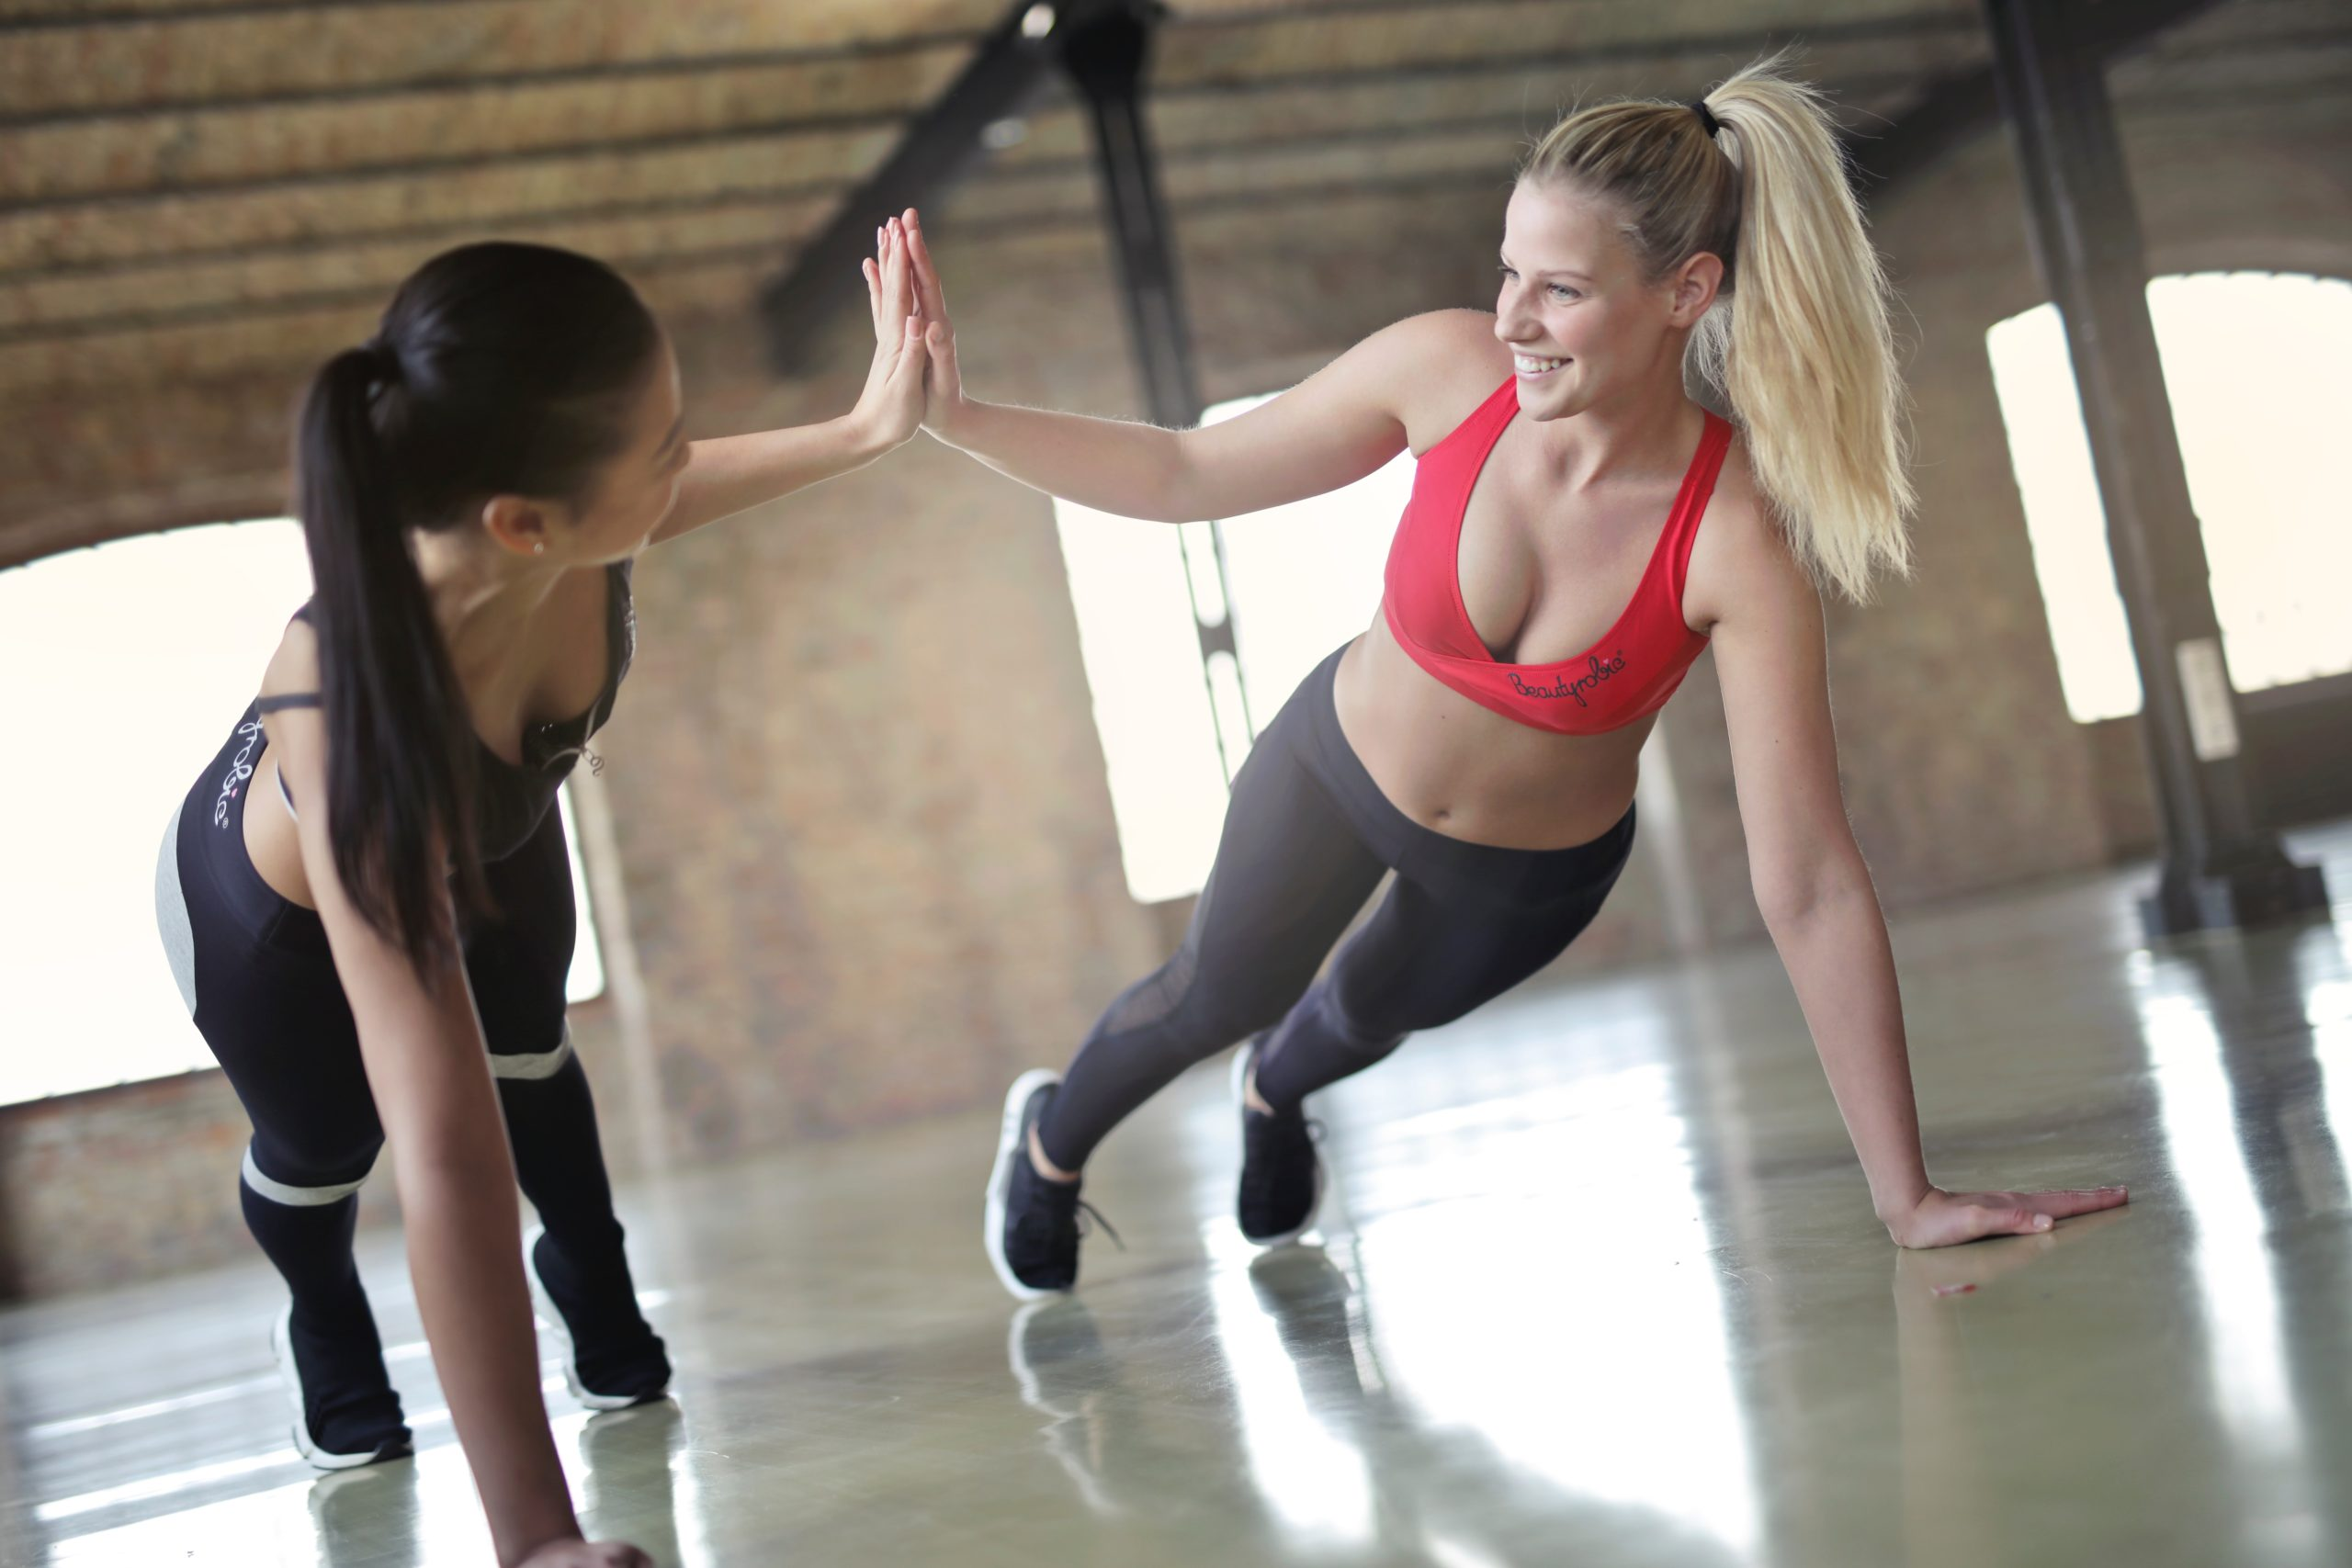 6 Unique & Alternative Tips To Take Your Fitness To The Next Level